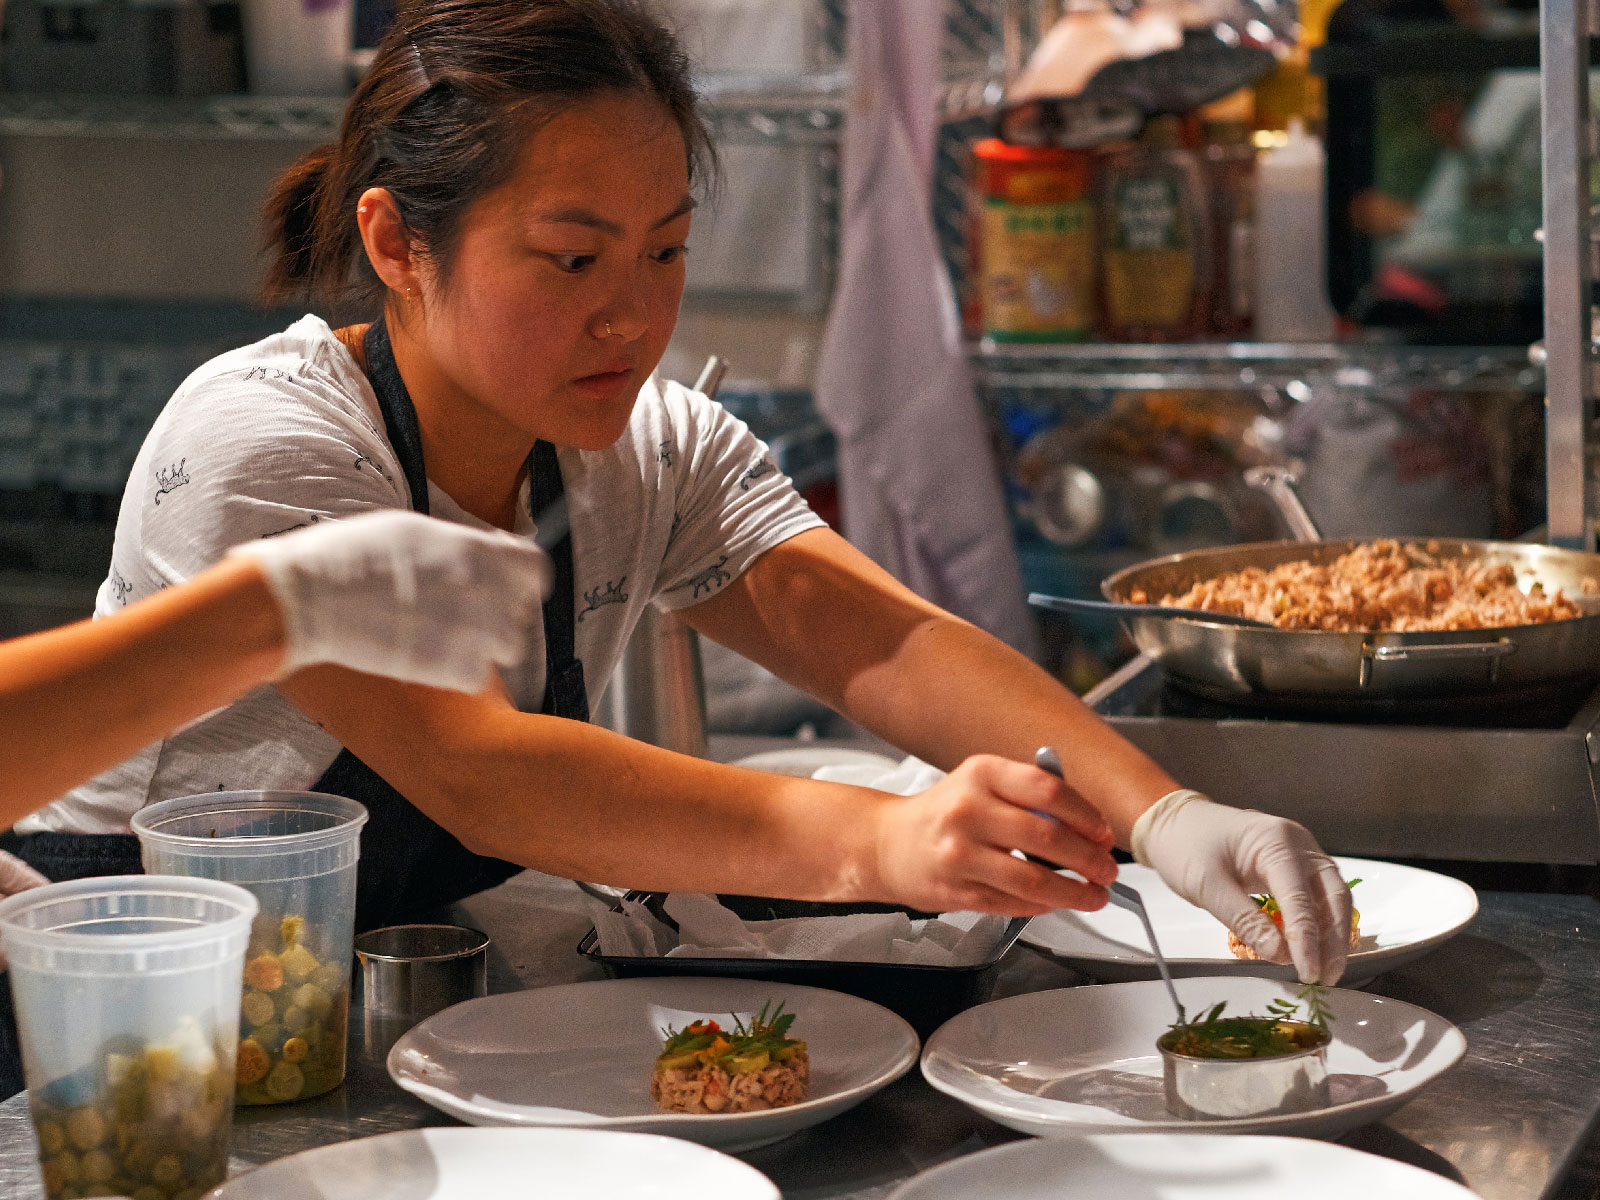 How This Asian-American Chef Uses Food and VR to Tell Her Immigrant Story